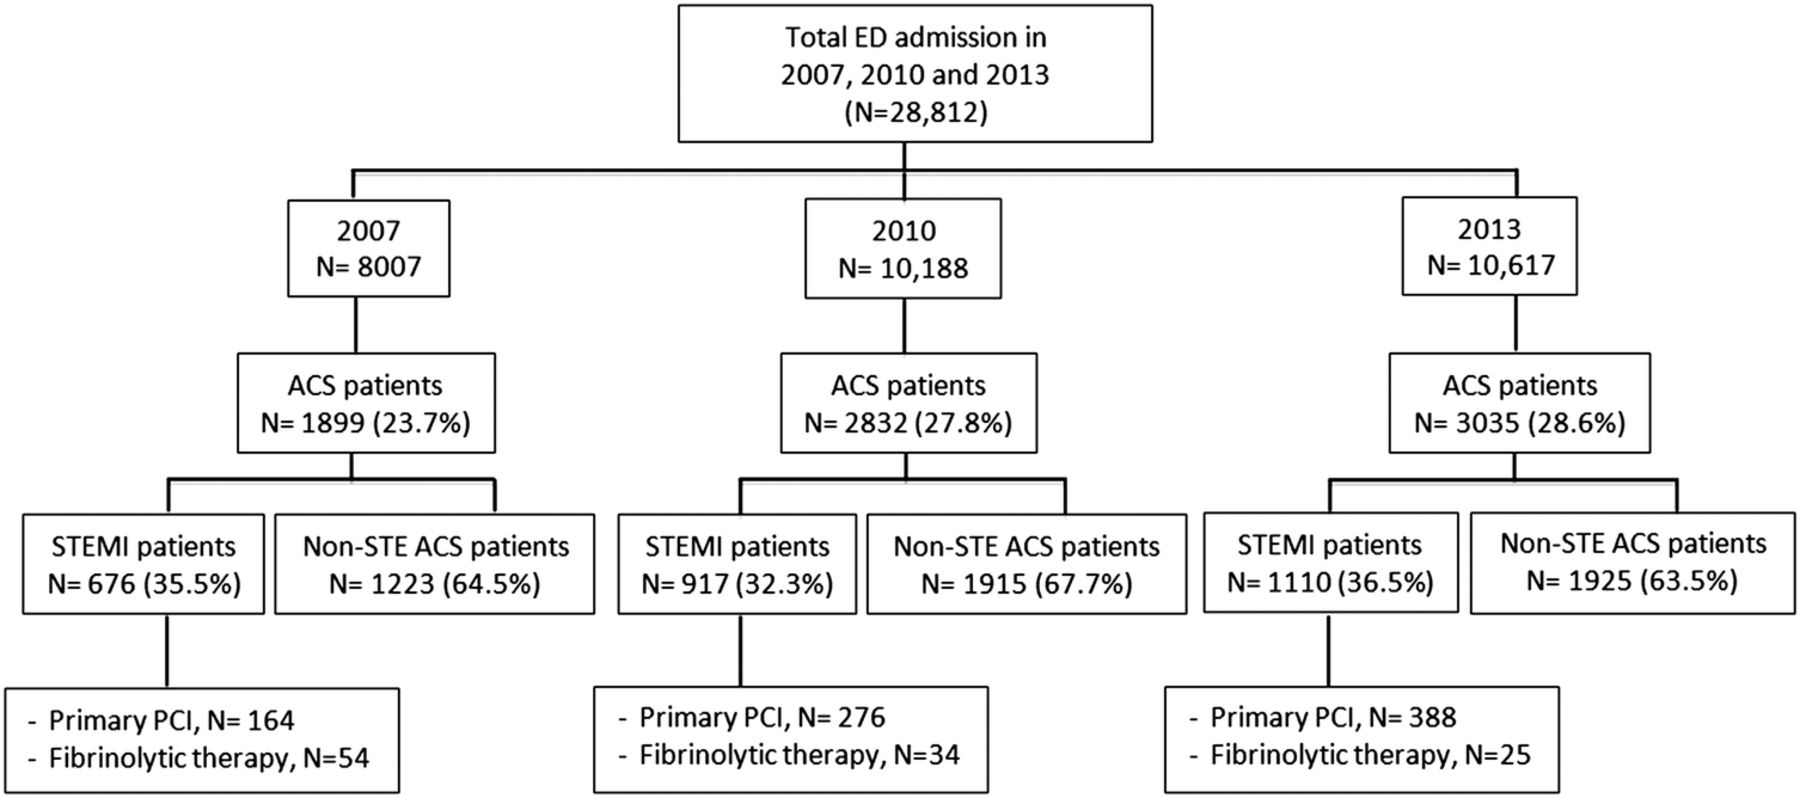 fibrinolytic vs. pci therapy grant proposal essay However, some studies found that the benefits of pci are evident in elderly stemi patients,11 13 and pci carries lower risks of adverse outcomes compared with fibrinolytic therapy11 14 however, these studies offer limited insight because they are studied in a preselected group of elderly patients who were offered and accepted pci.